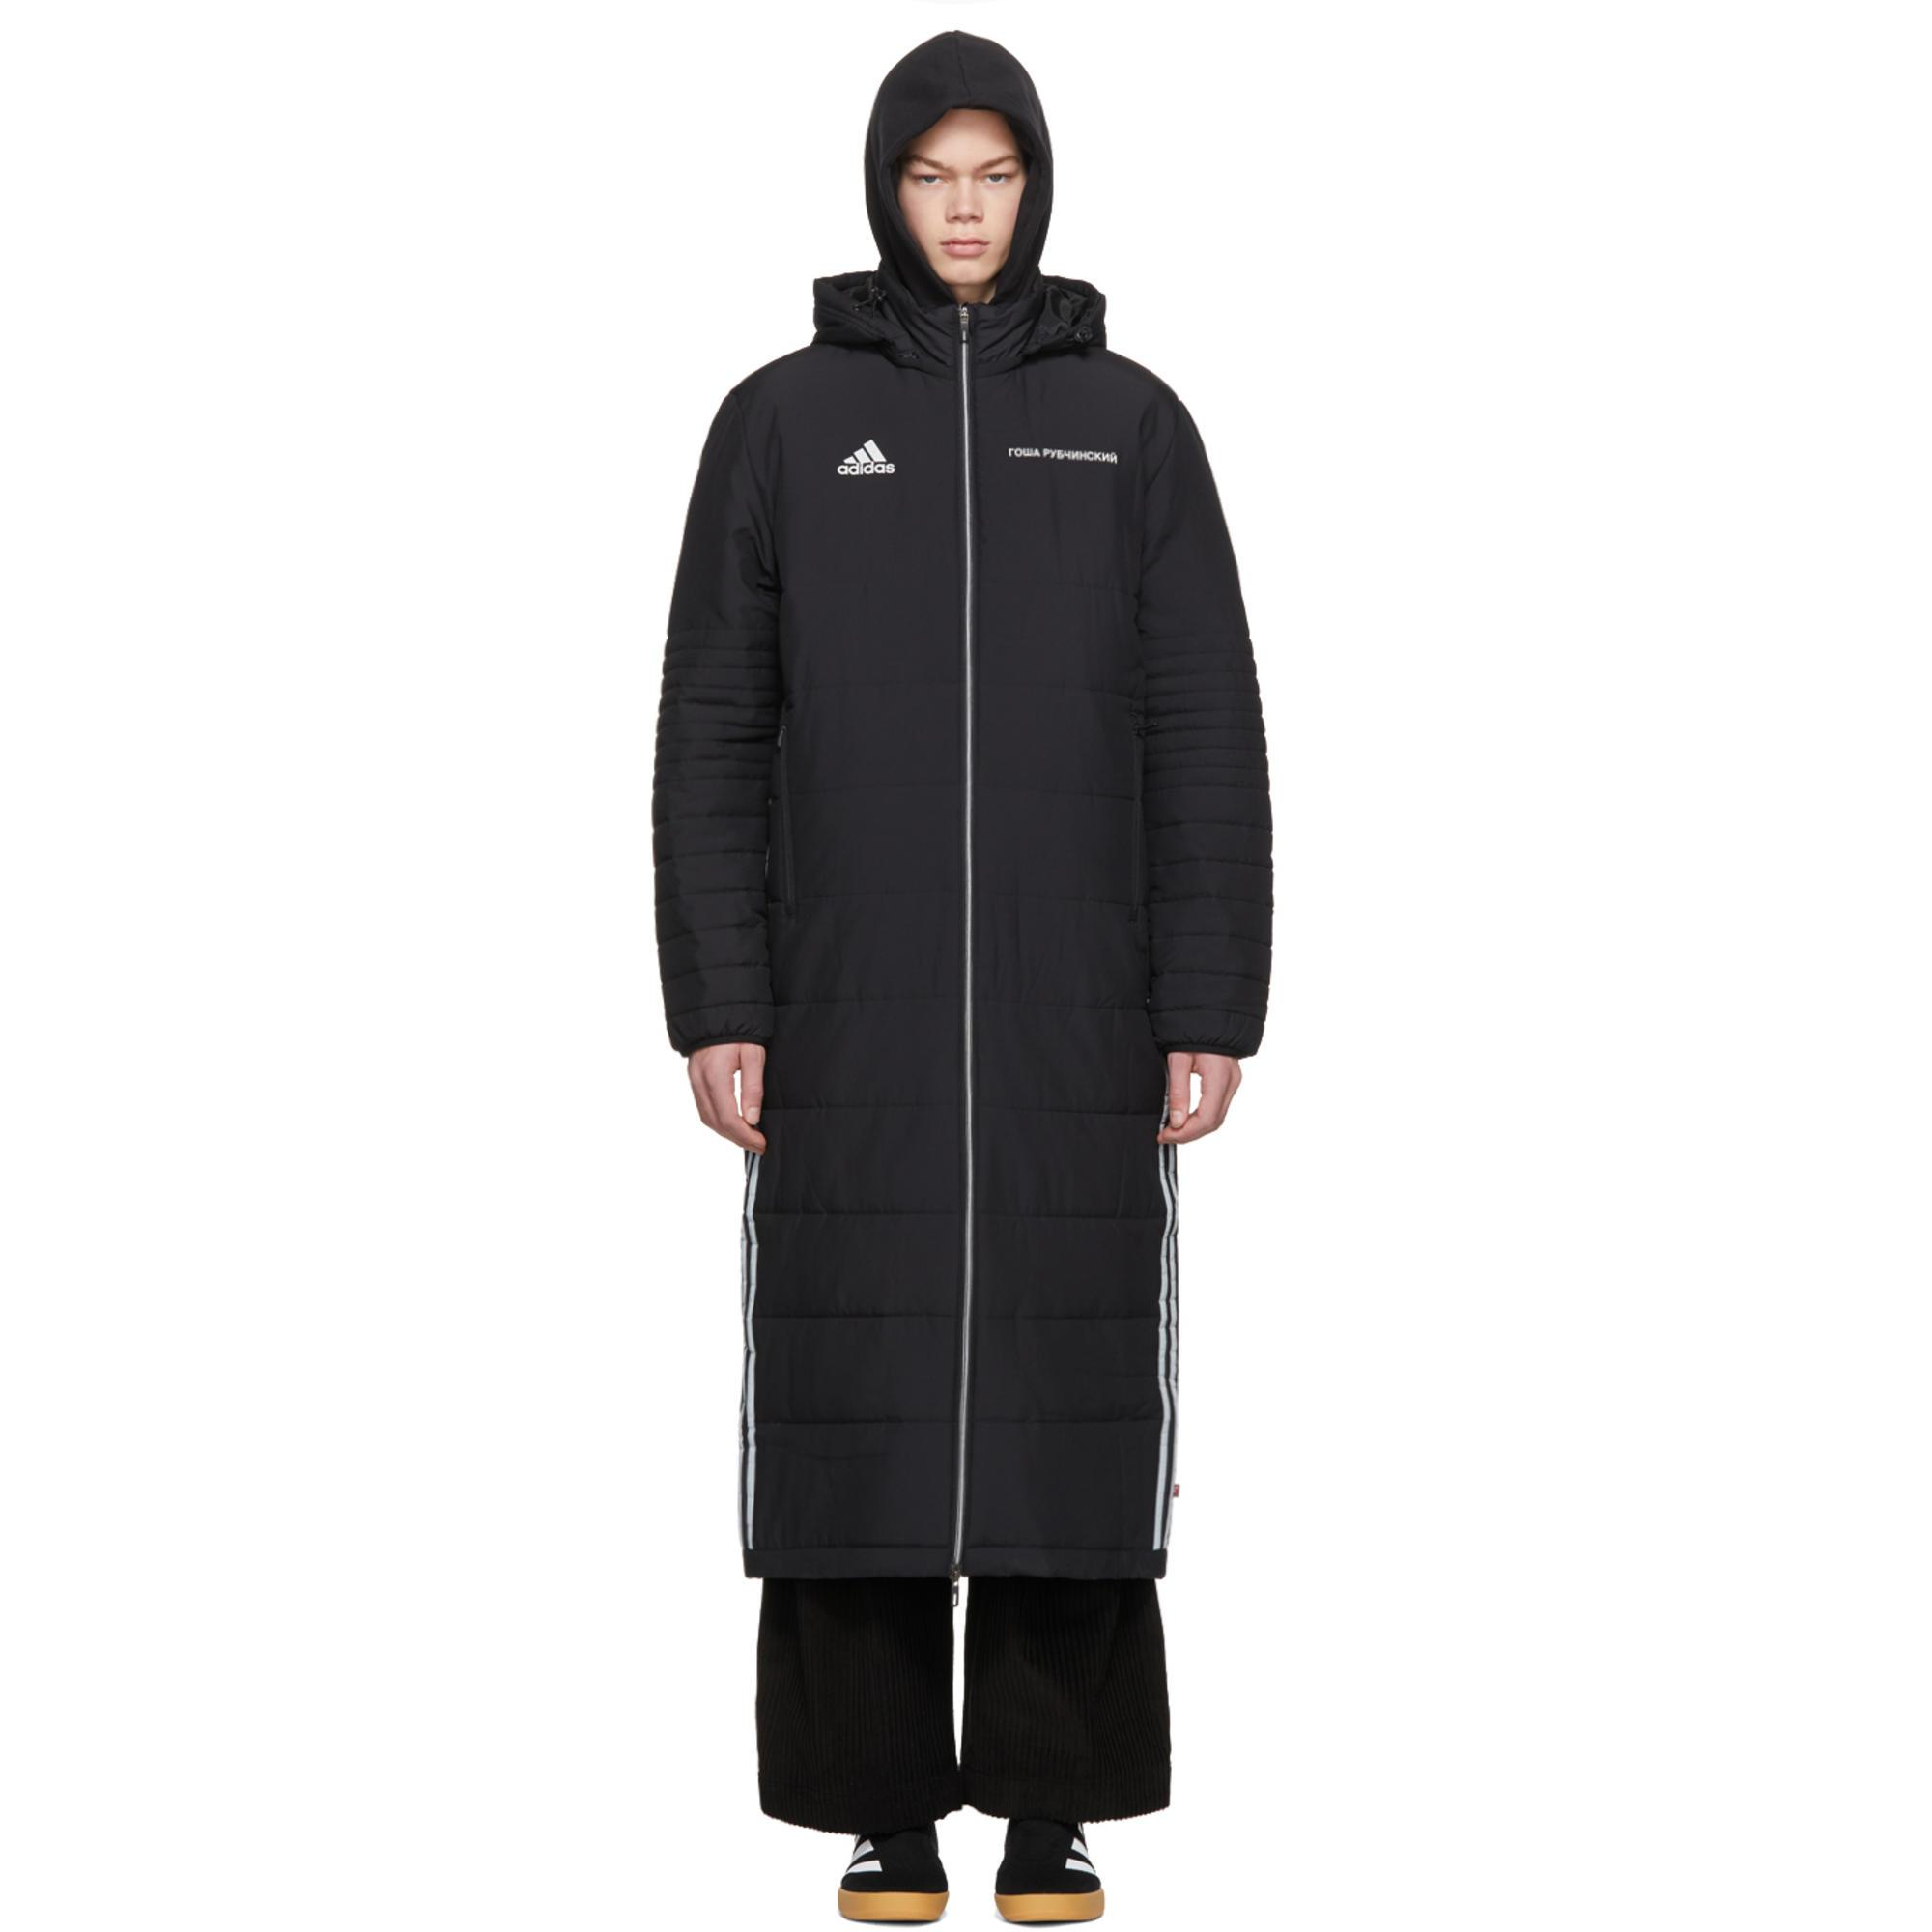 5bcdc085a Gosha Rubchinskiy Black Adidas Originals Edition Wind Coat for men